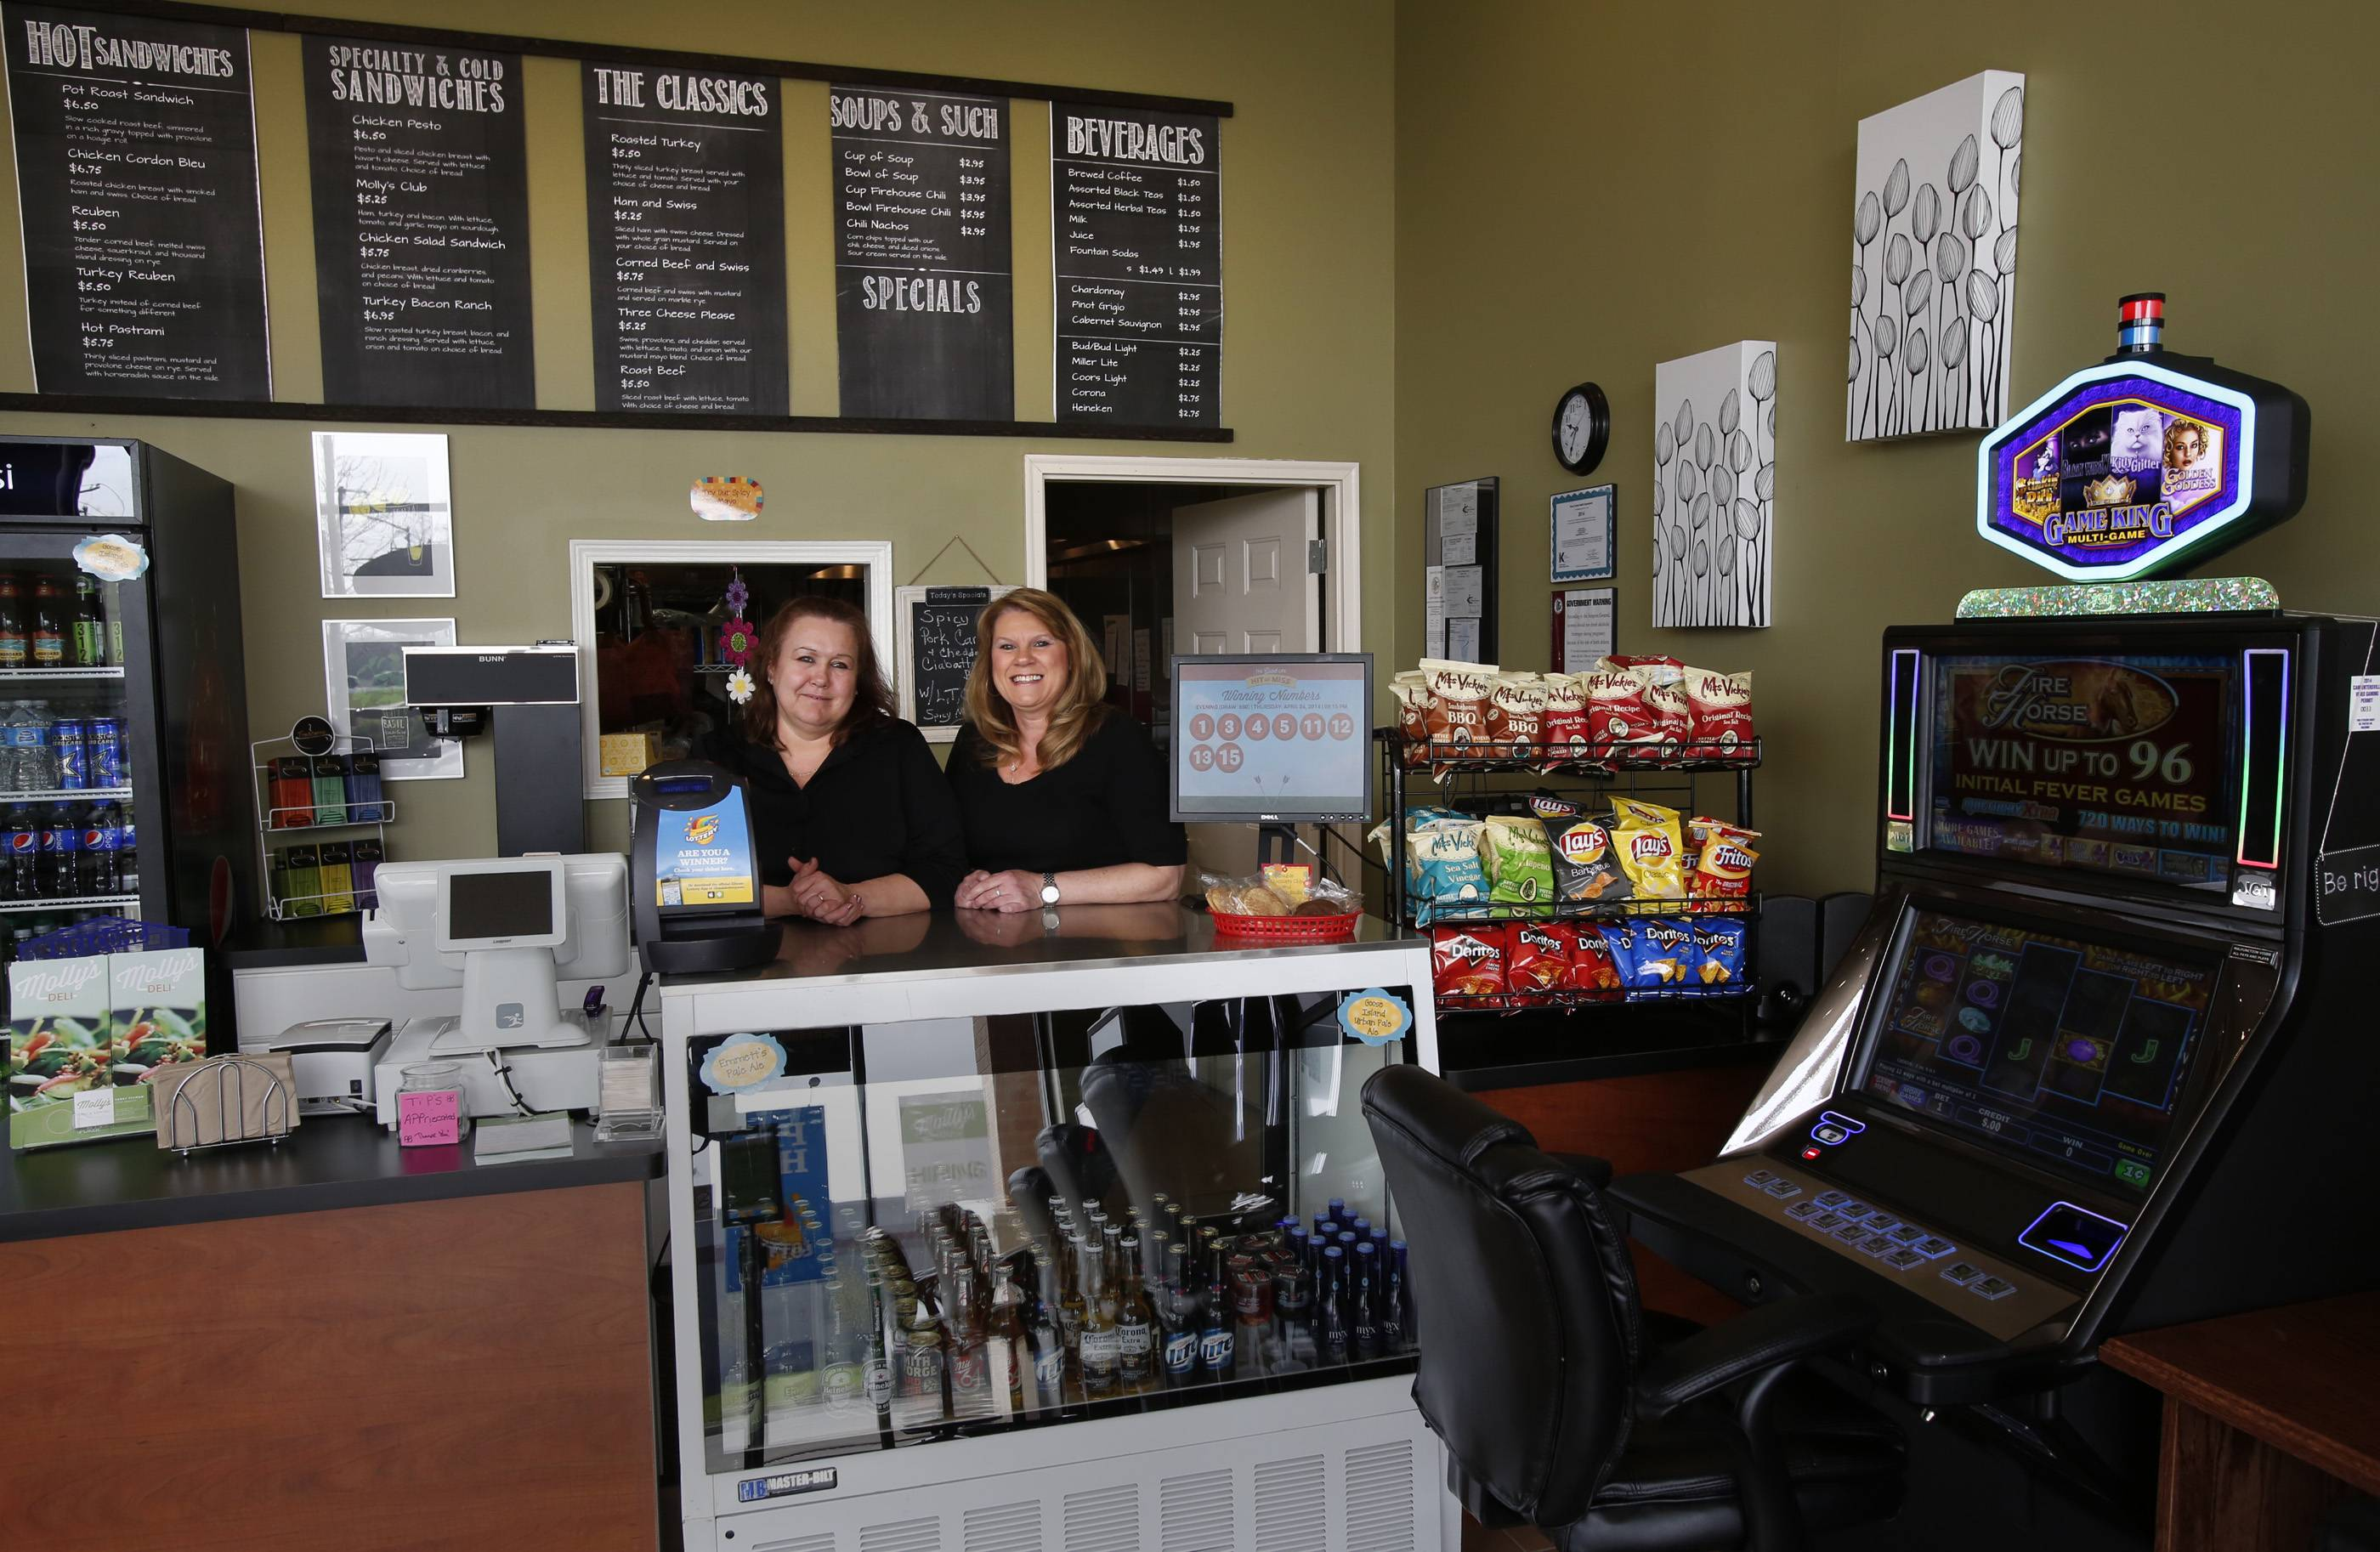 Manager Terry Tylman, right, and assistant manager Roberta Pittenturf are ready to take your order at Molly's Deli in Carpentersville, where customers can enjoy video gaming along with deli sandwiches and drinks.